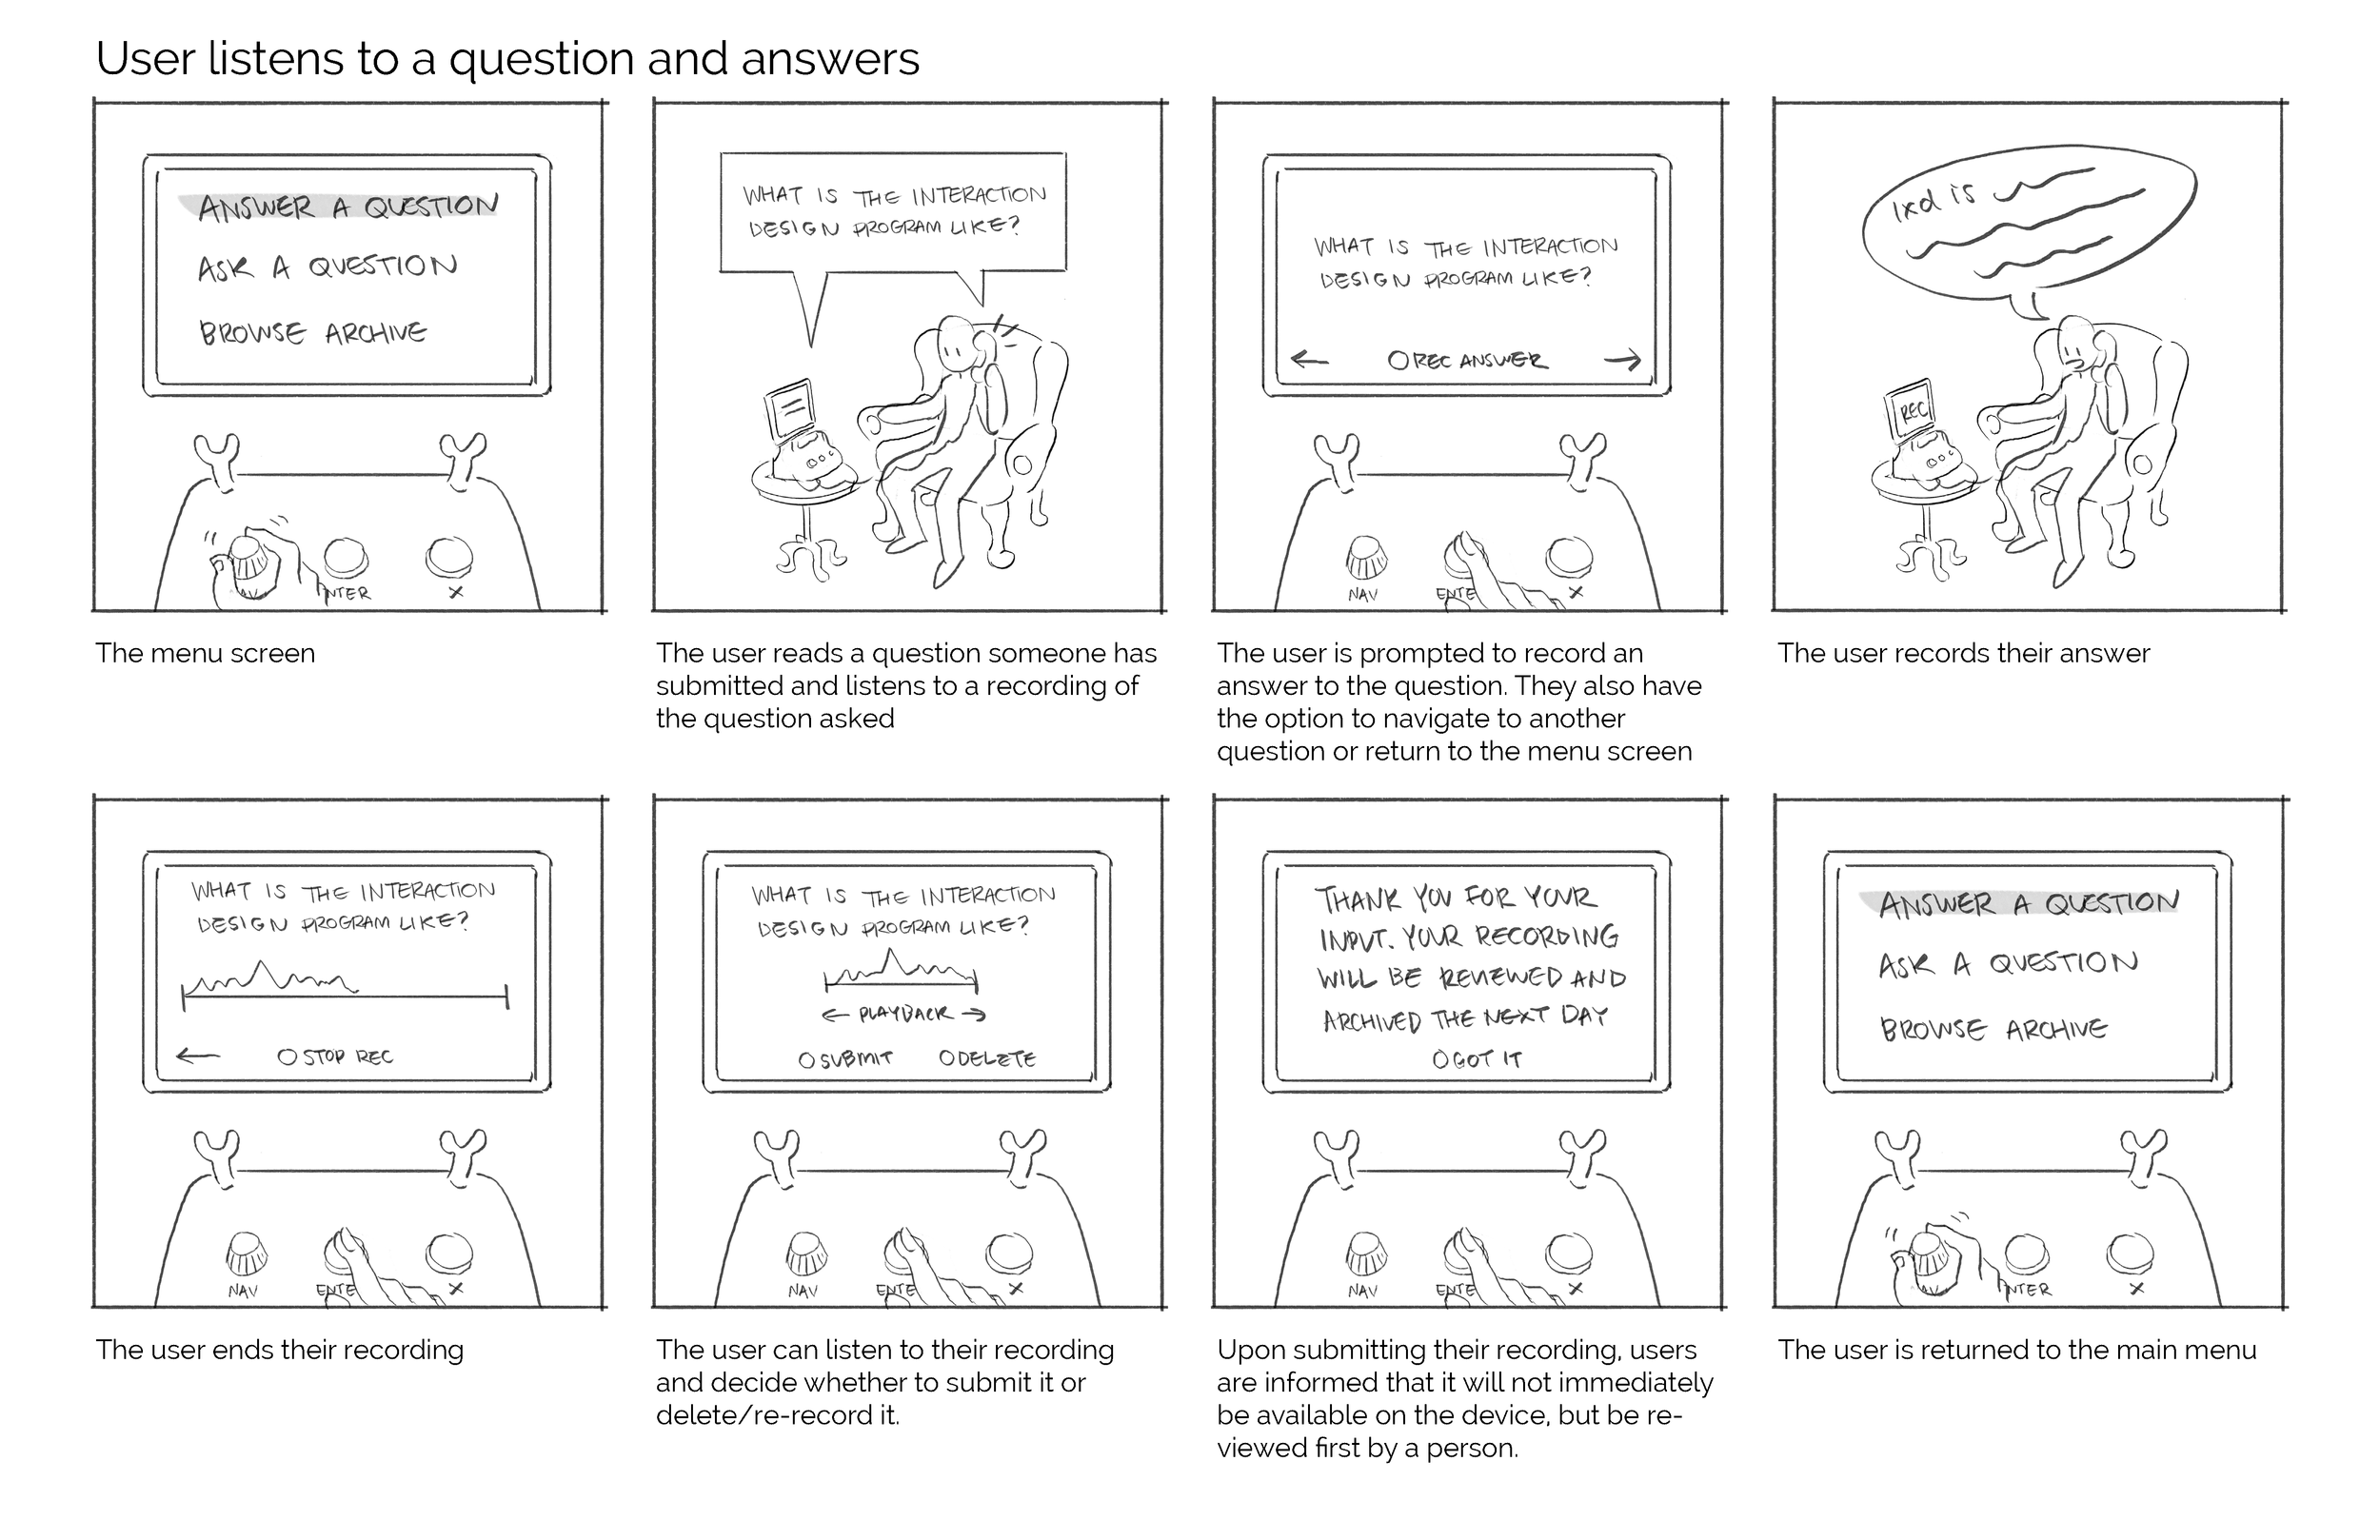 boards_answering_help-2.png